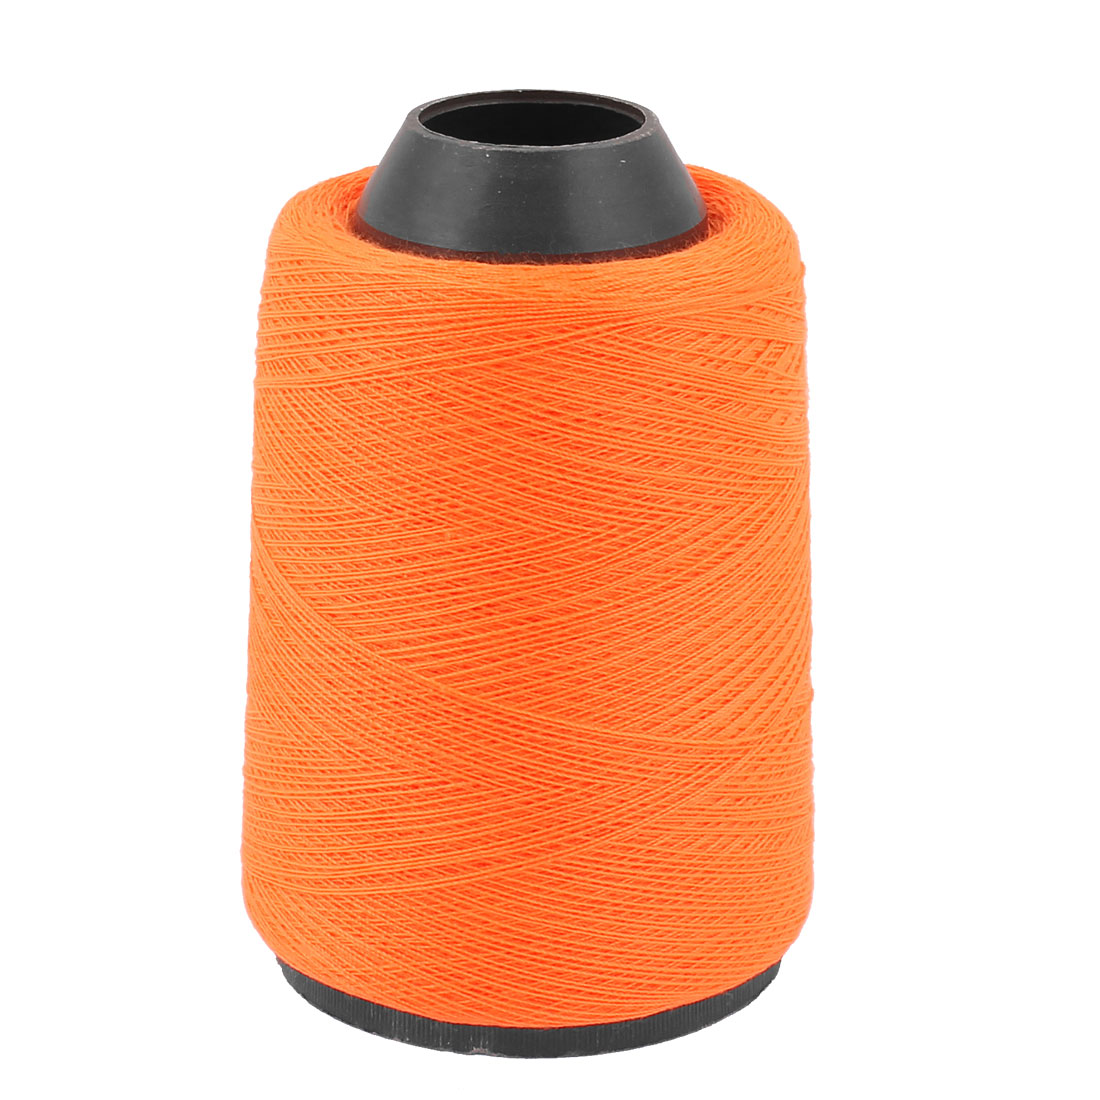 Dressmaker Tailoring Craft Stitching Sewing Thread Reel Line Spool Orange